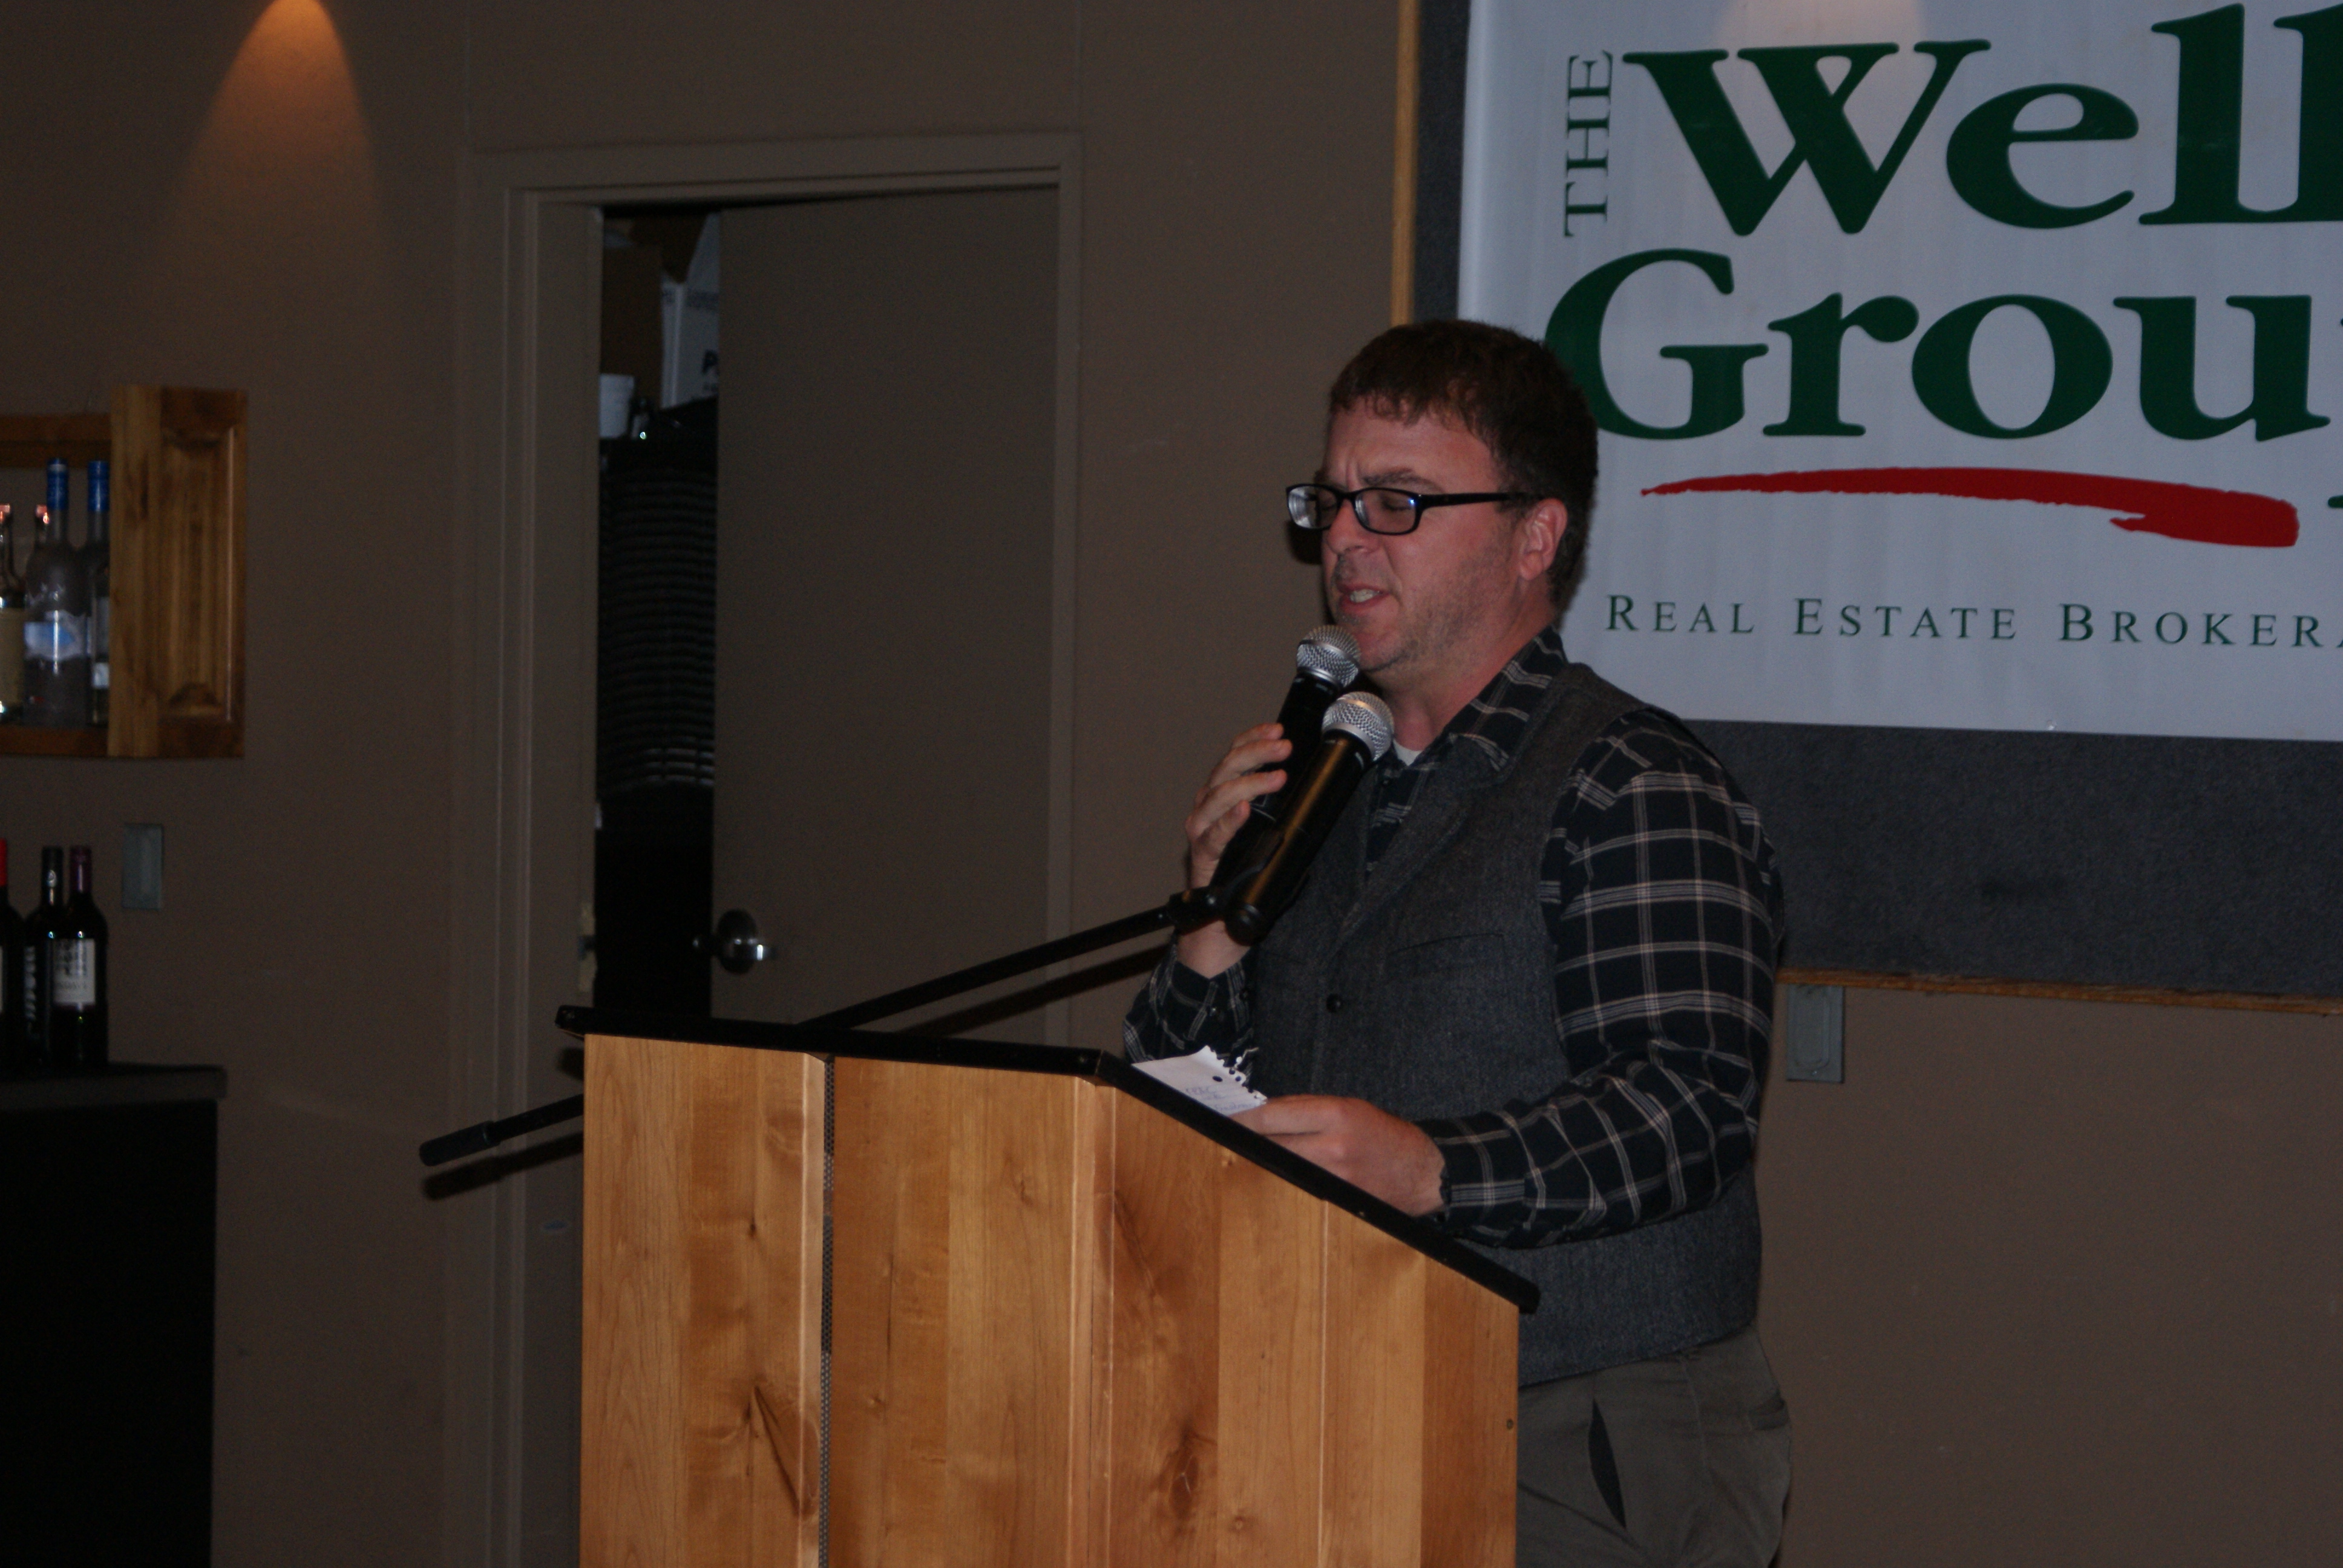 Jerome Bleger presents the Realtor of the Year Award.